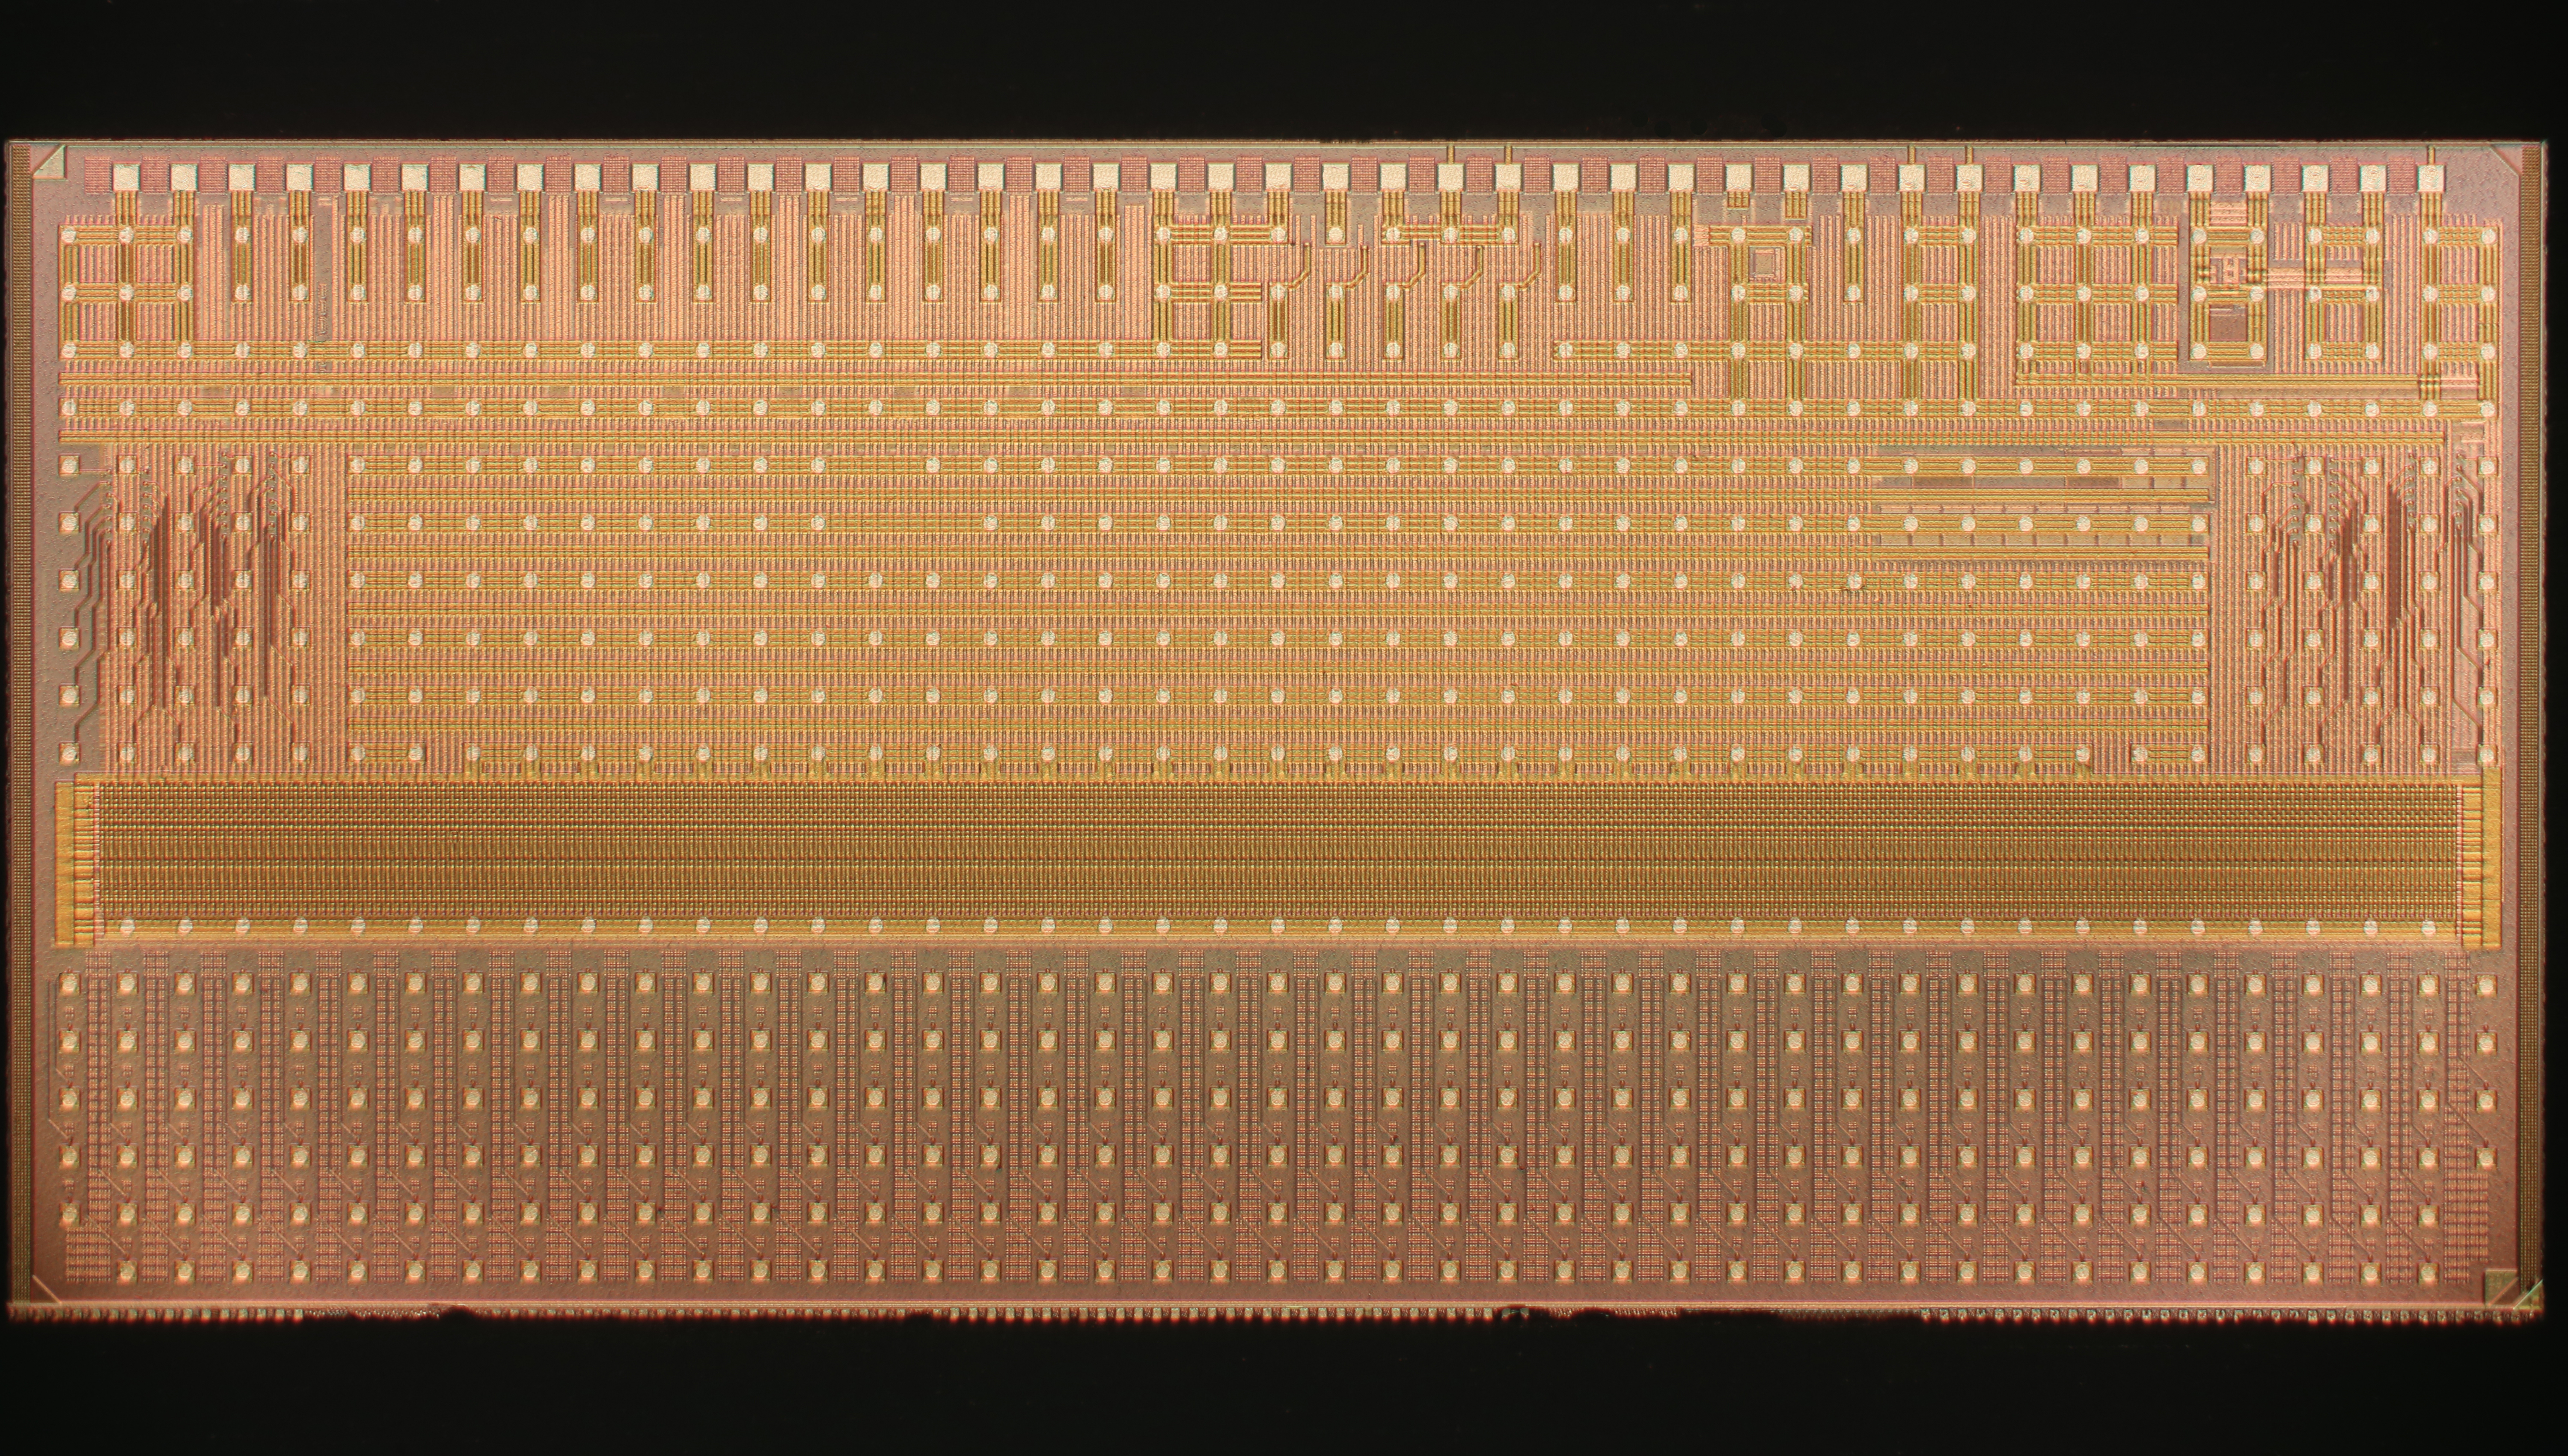 A top view of a single CBC integrated circuit showing the upper layer of metal interconnect tracks and the array of pads used to connect the chip to the module circuit board.